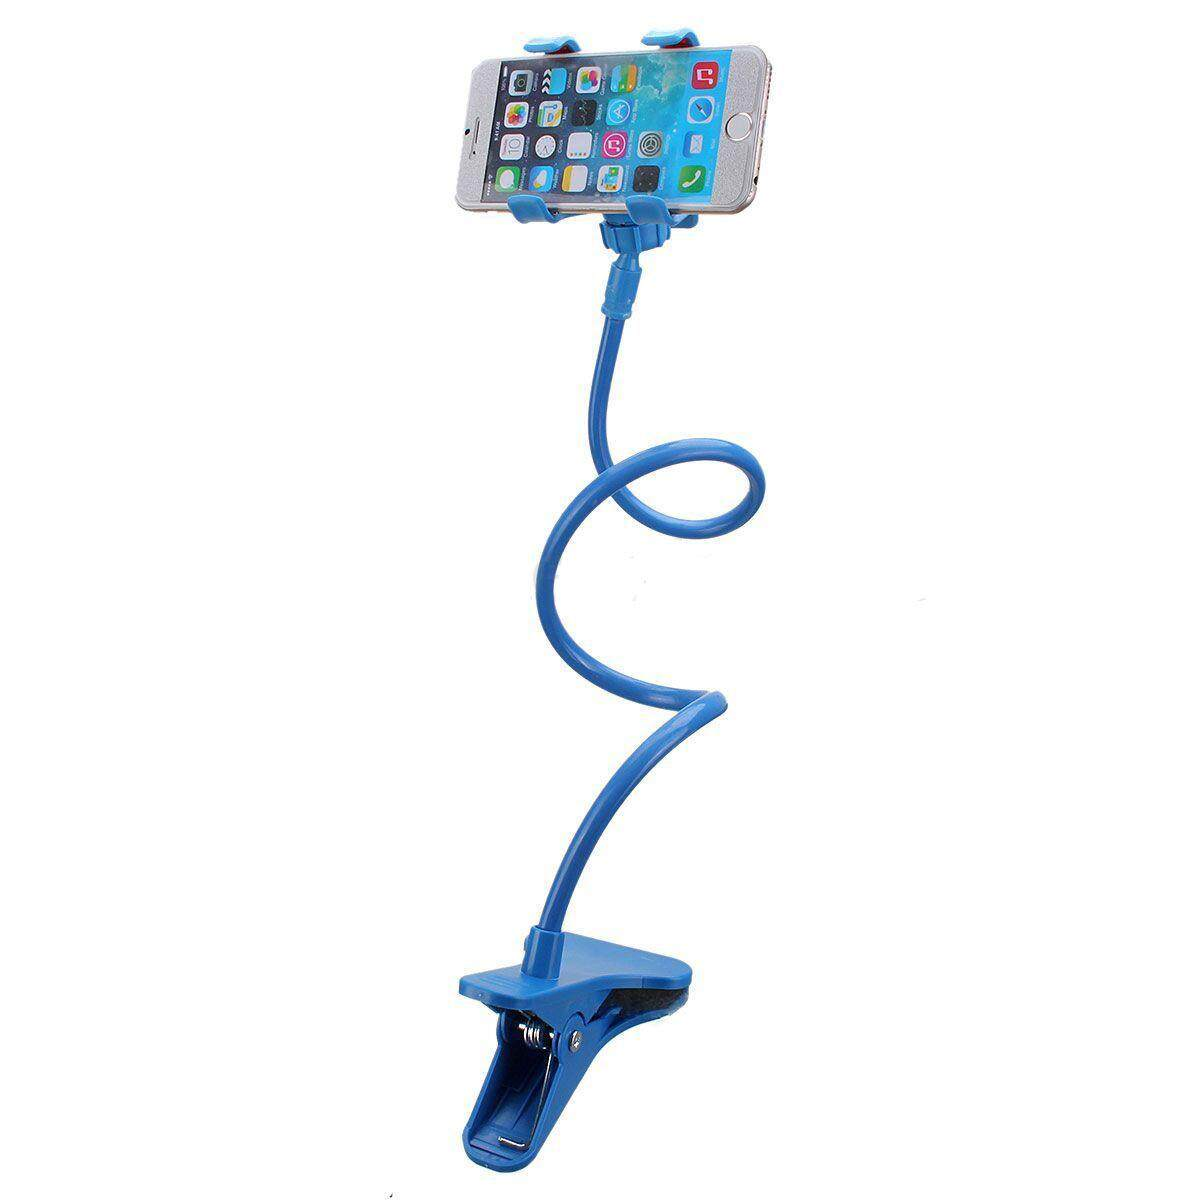 Universal Mobile Phone Support Pinza Flexible Adjustable Car Mesa Bed Light Blue By Benefitwen.